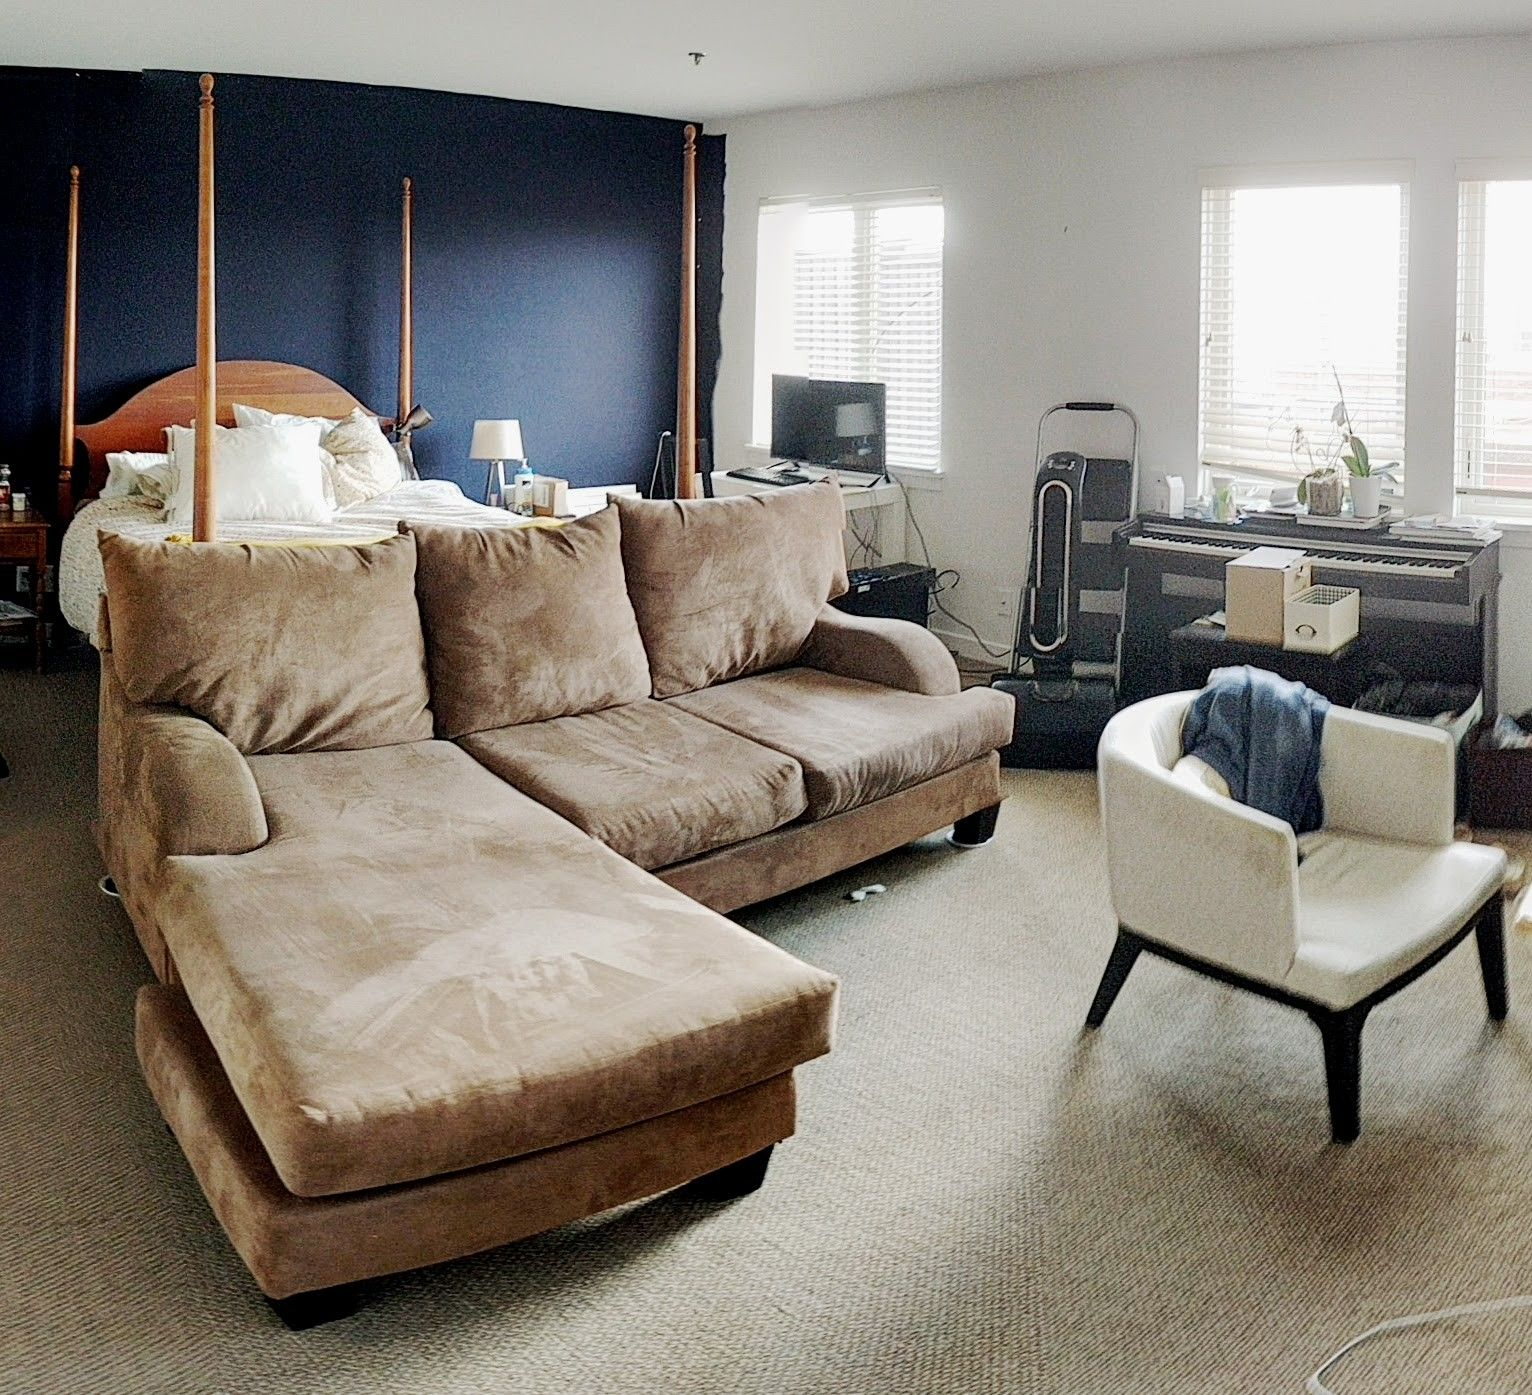 Put your sofa at foot of bed in the main room. So your bed